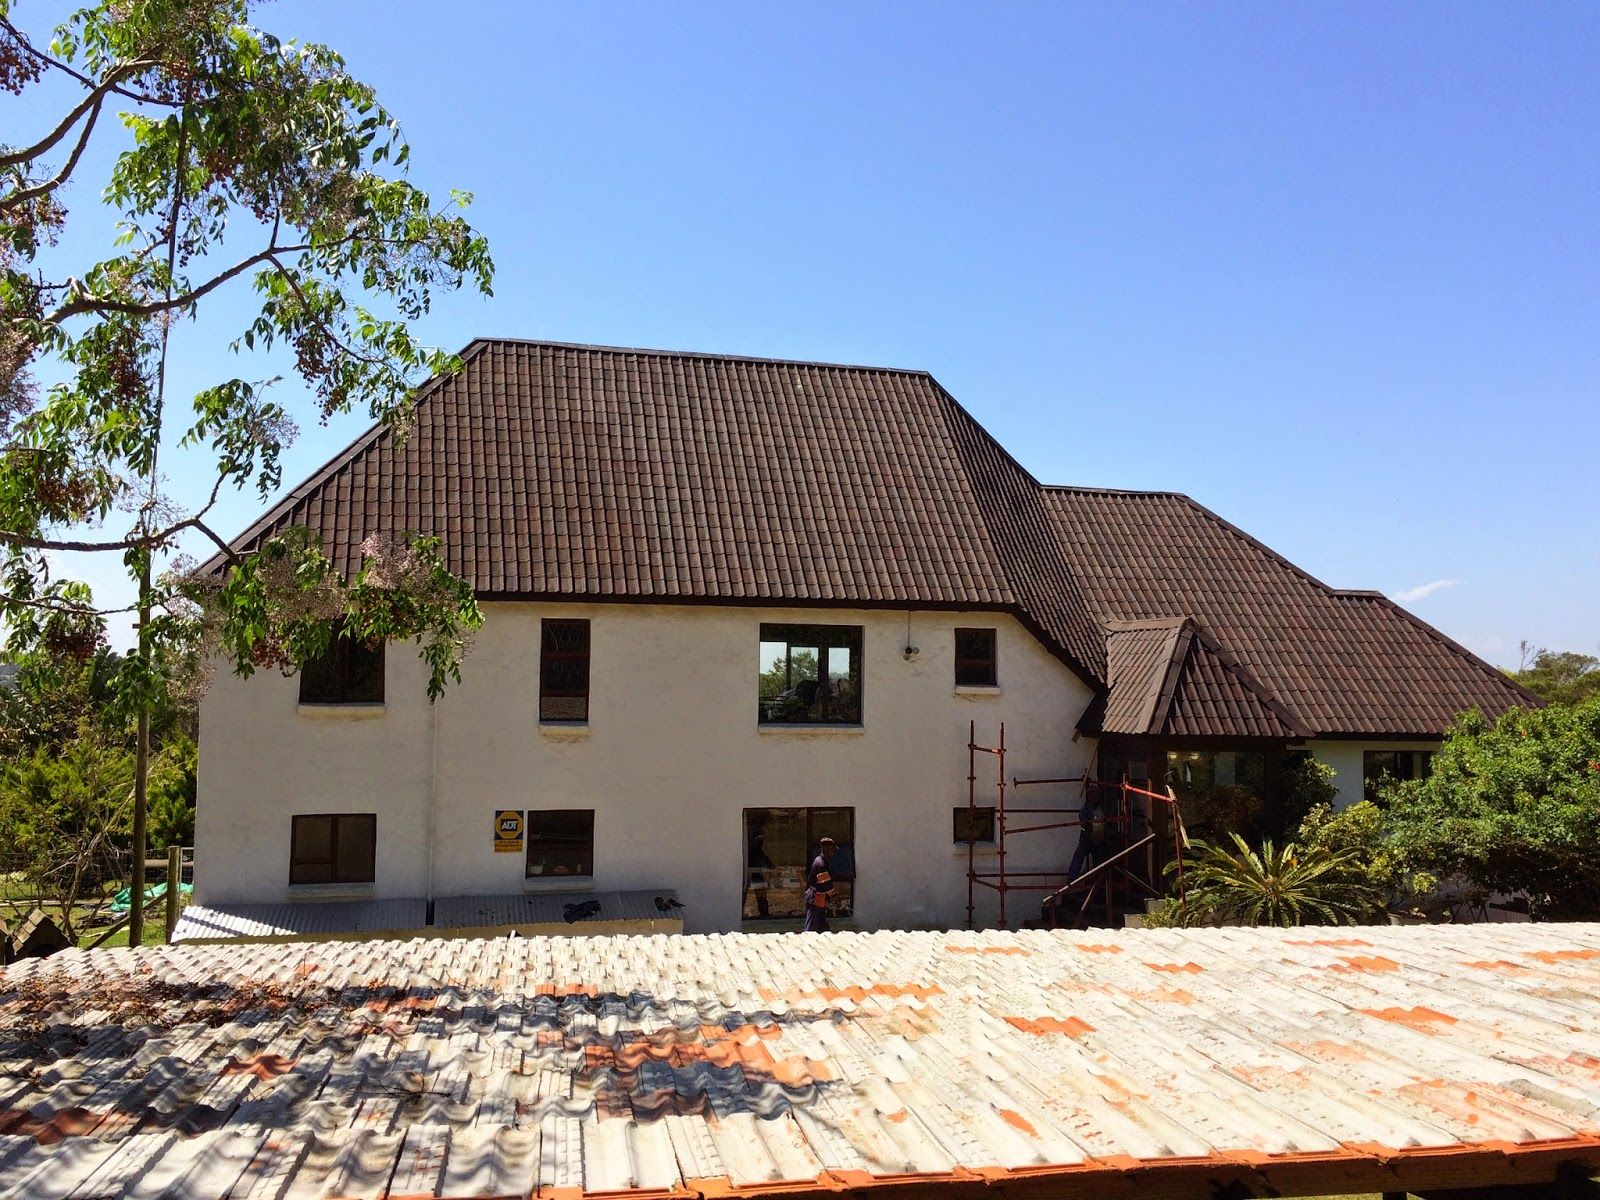 A Big Old Thatched House Converted To Shaded Brown Onduvilla Tiles The Angles Of The Roof Tiles Look Stunning Roof Architecture Fibreglass Roof Building Roof